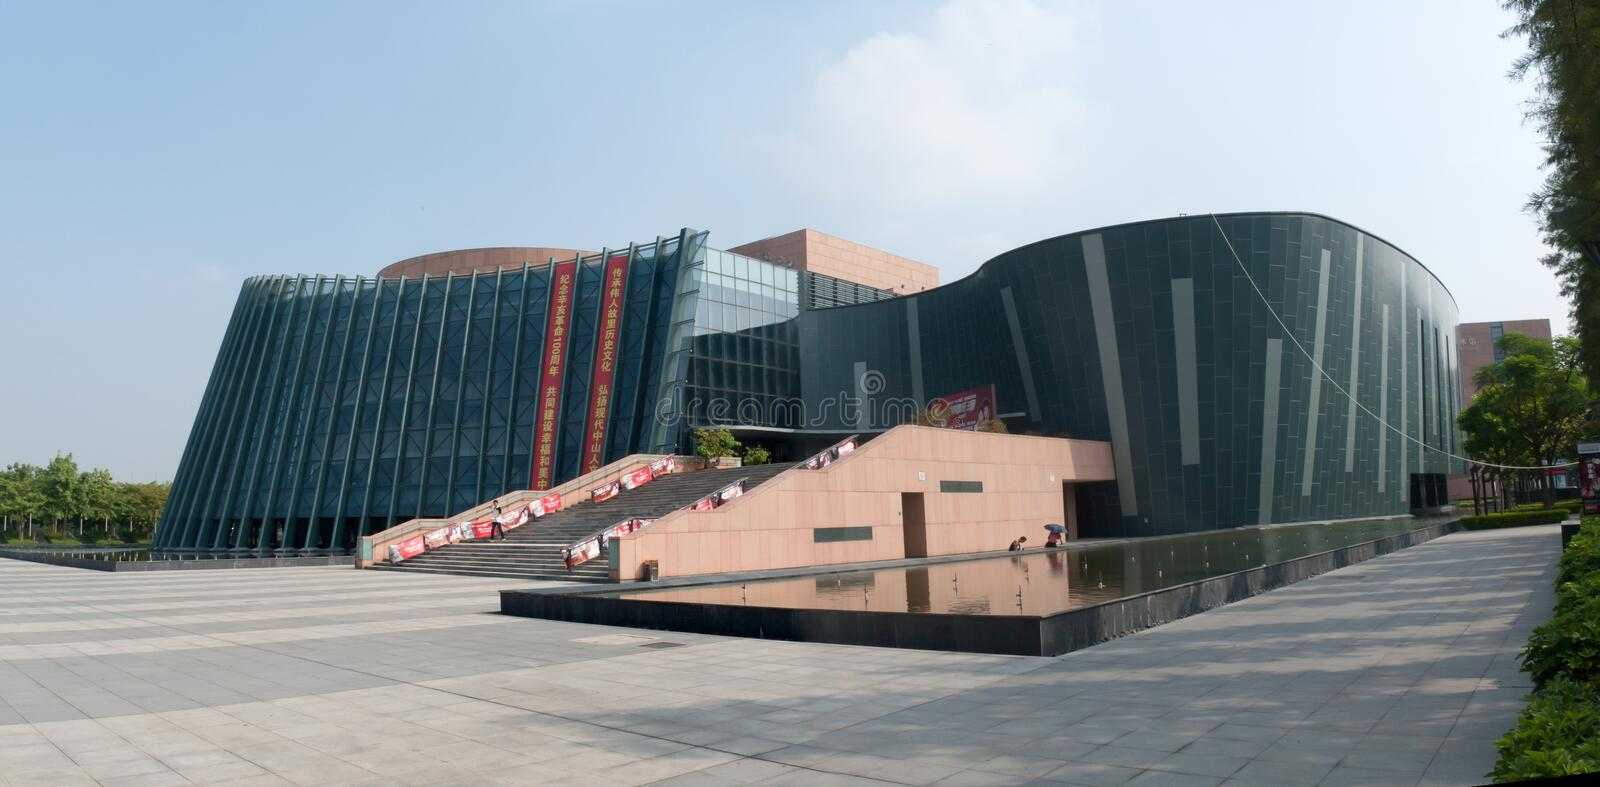 Zhongshan Culture and Art Center